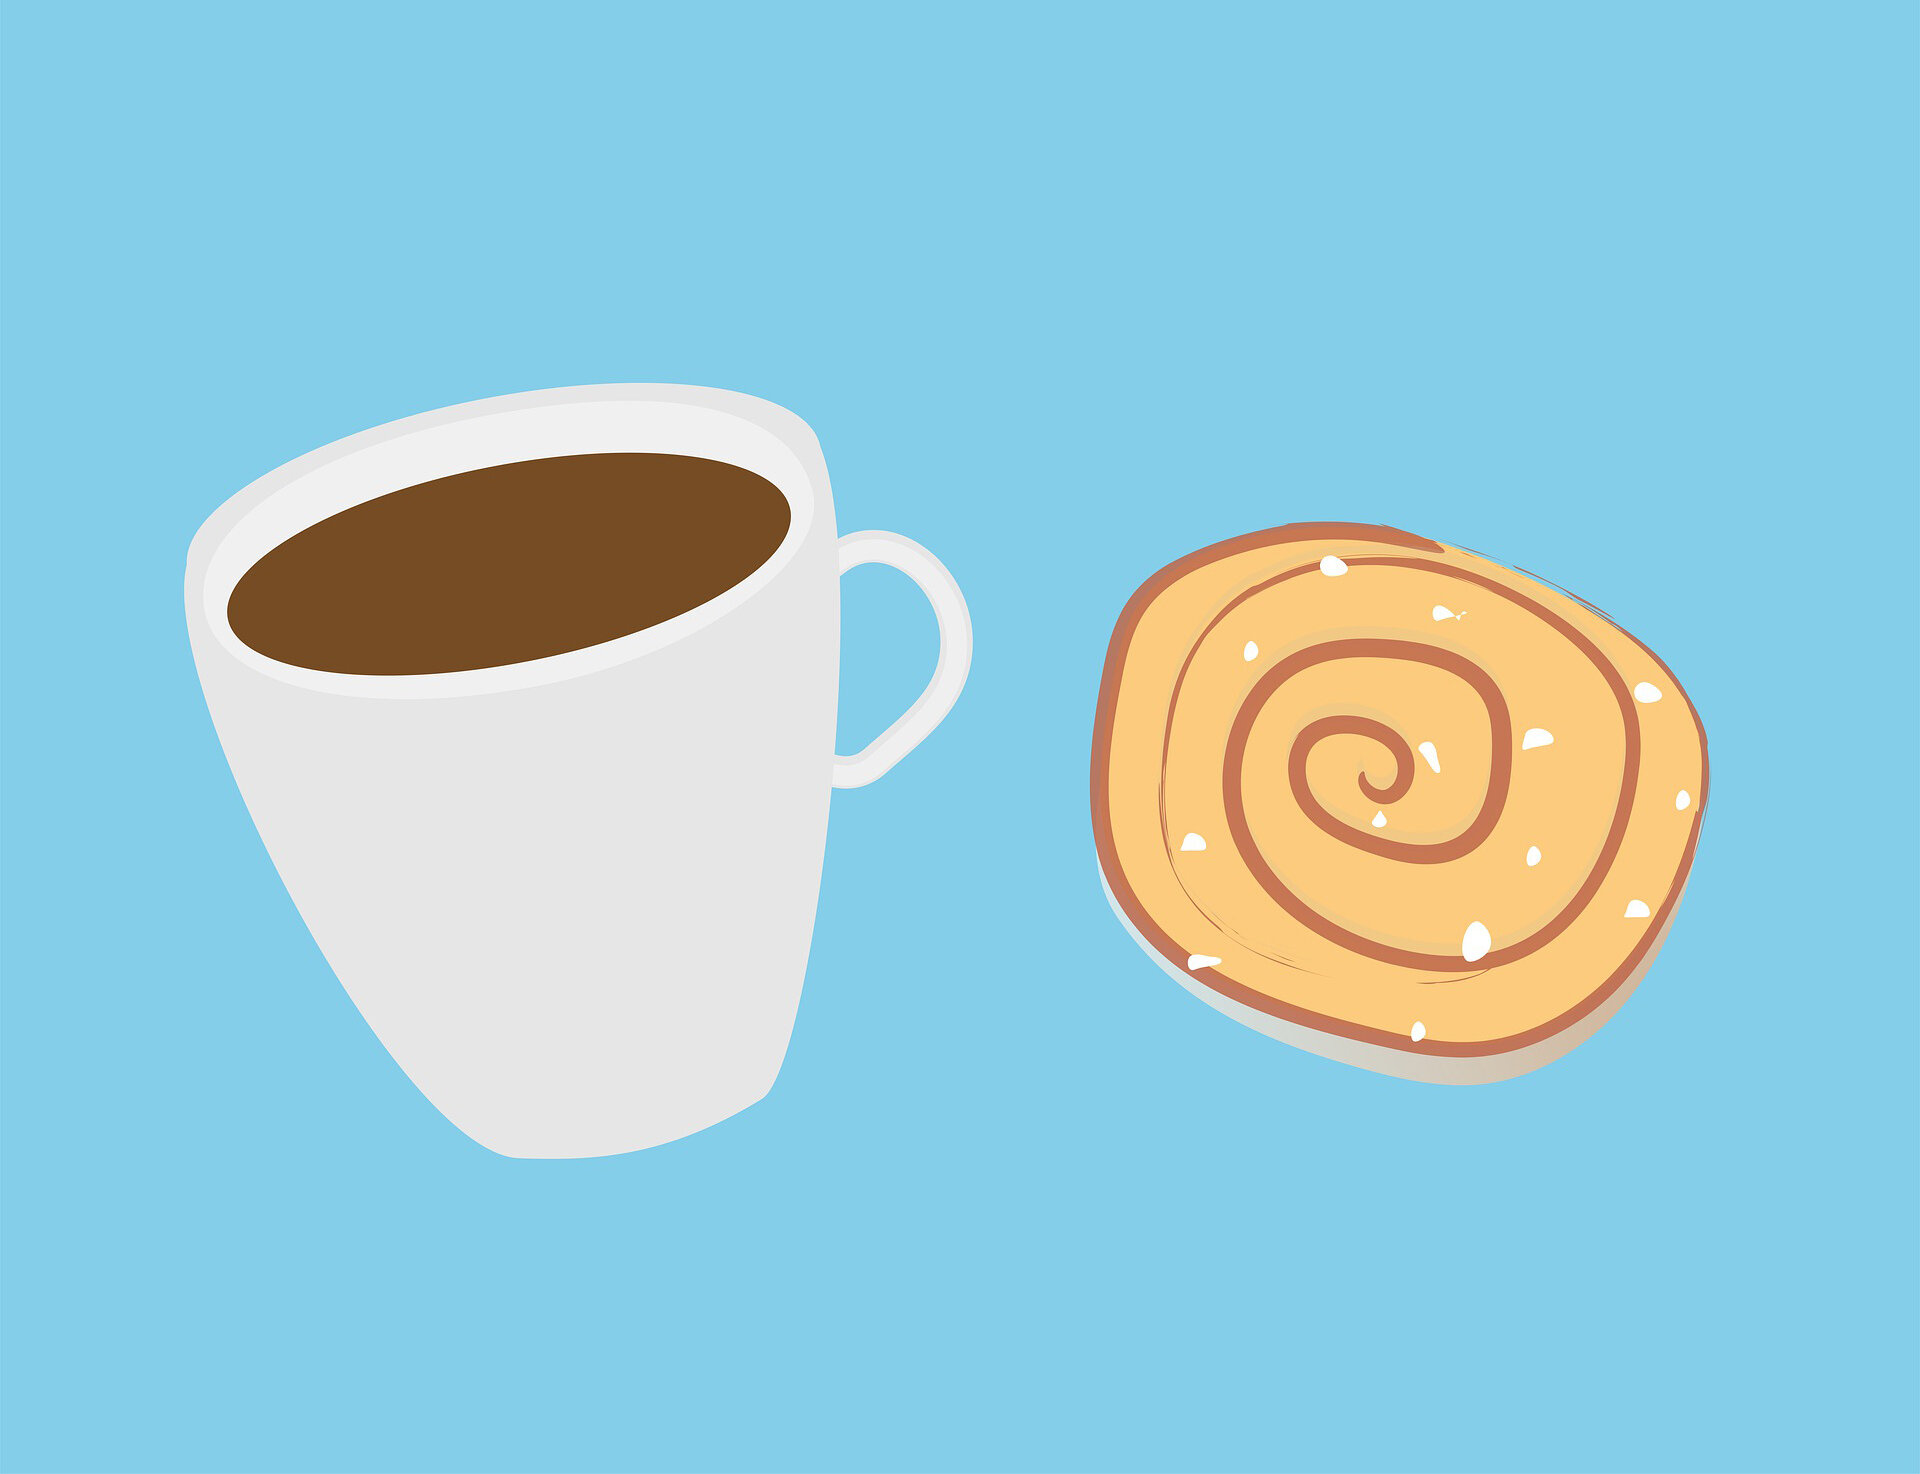 Cartoon-like drawing of coffee in a mug & a spiraled pastry.